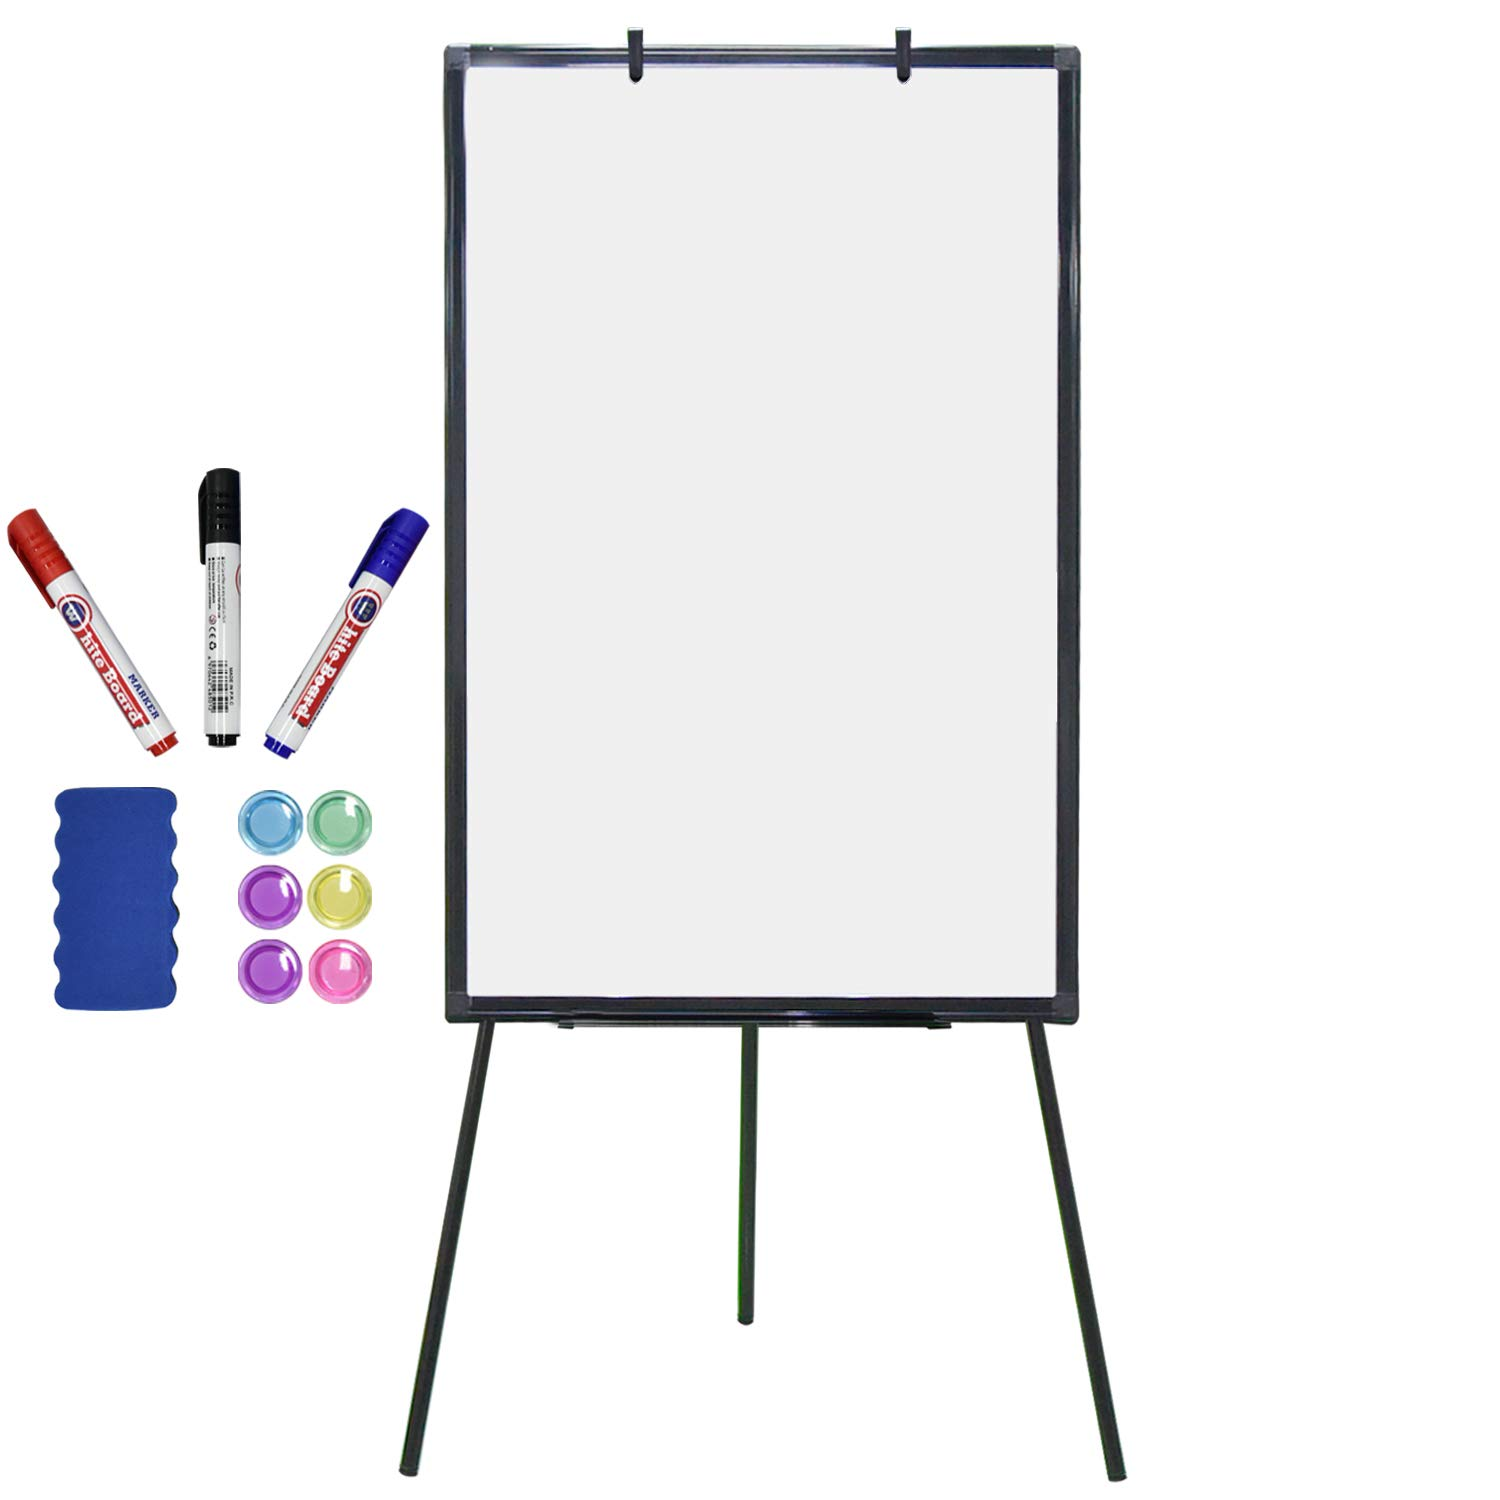 Magnetic Dry Erase Board with Stand 36 x 24 inch Easel White Boards for Kids Classroom Office Portable Height Adjustable with Flipchart Hook, Black